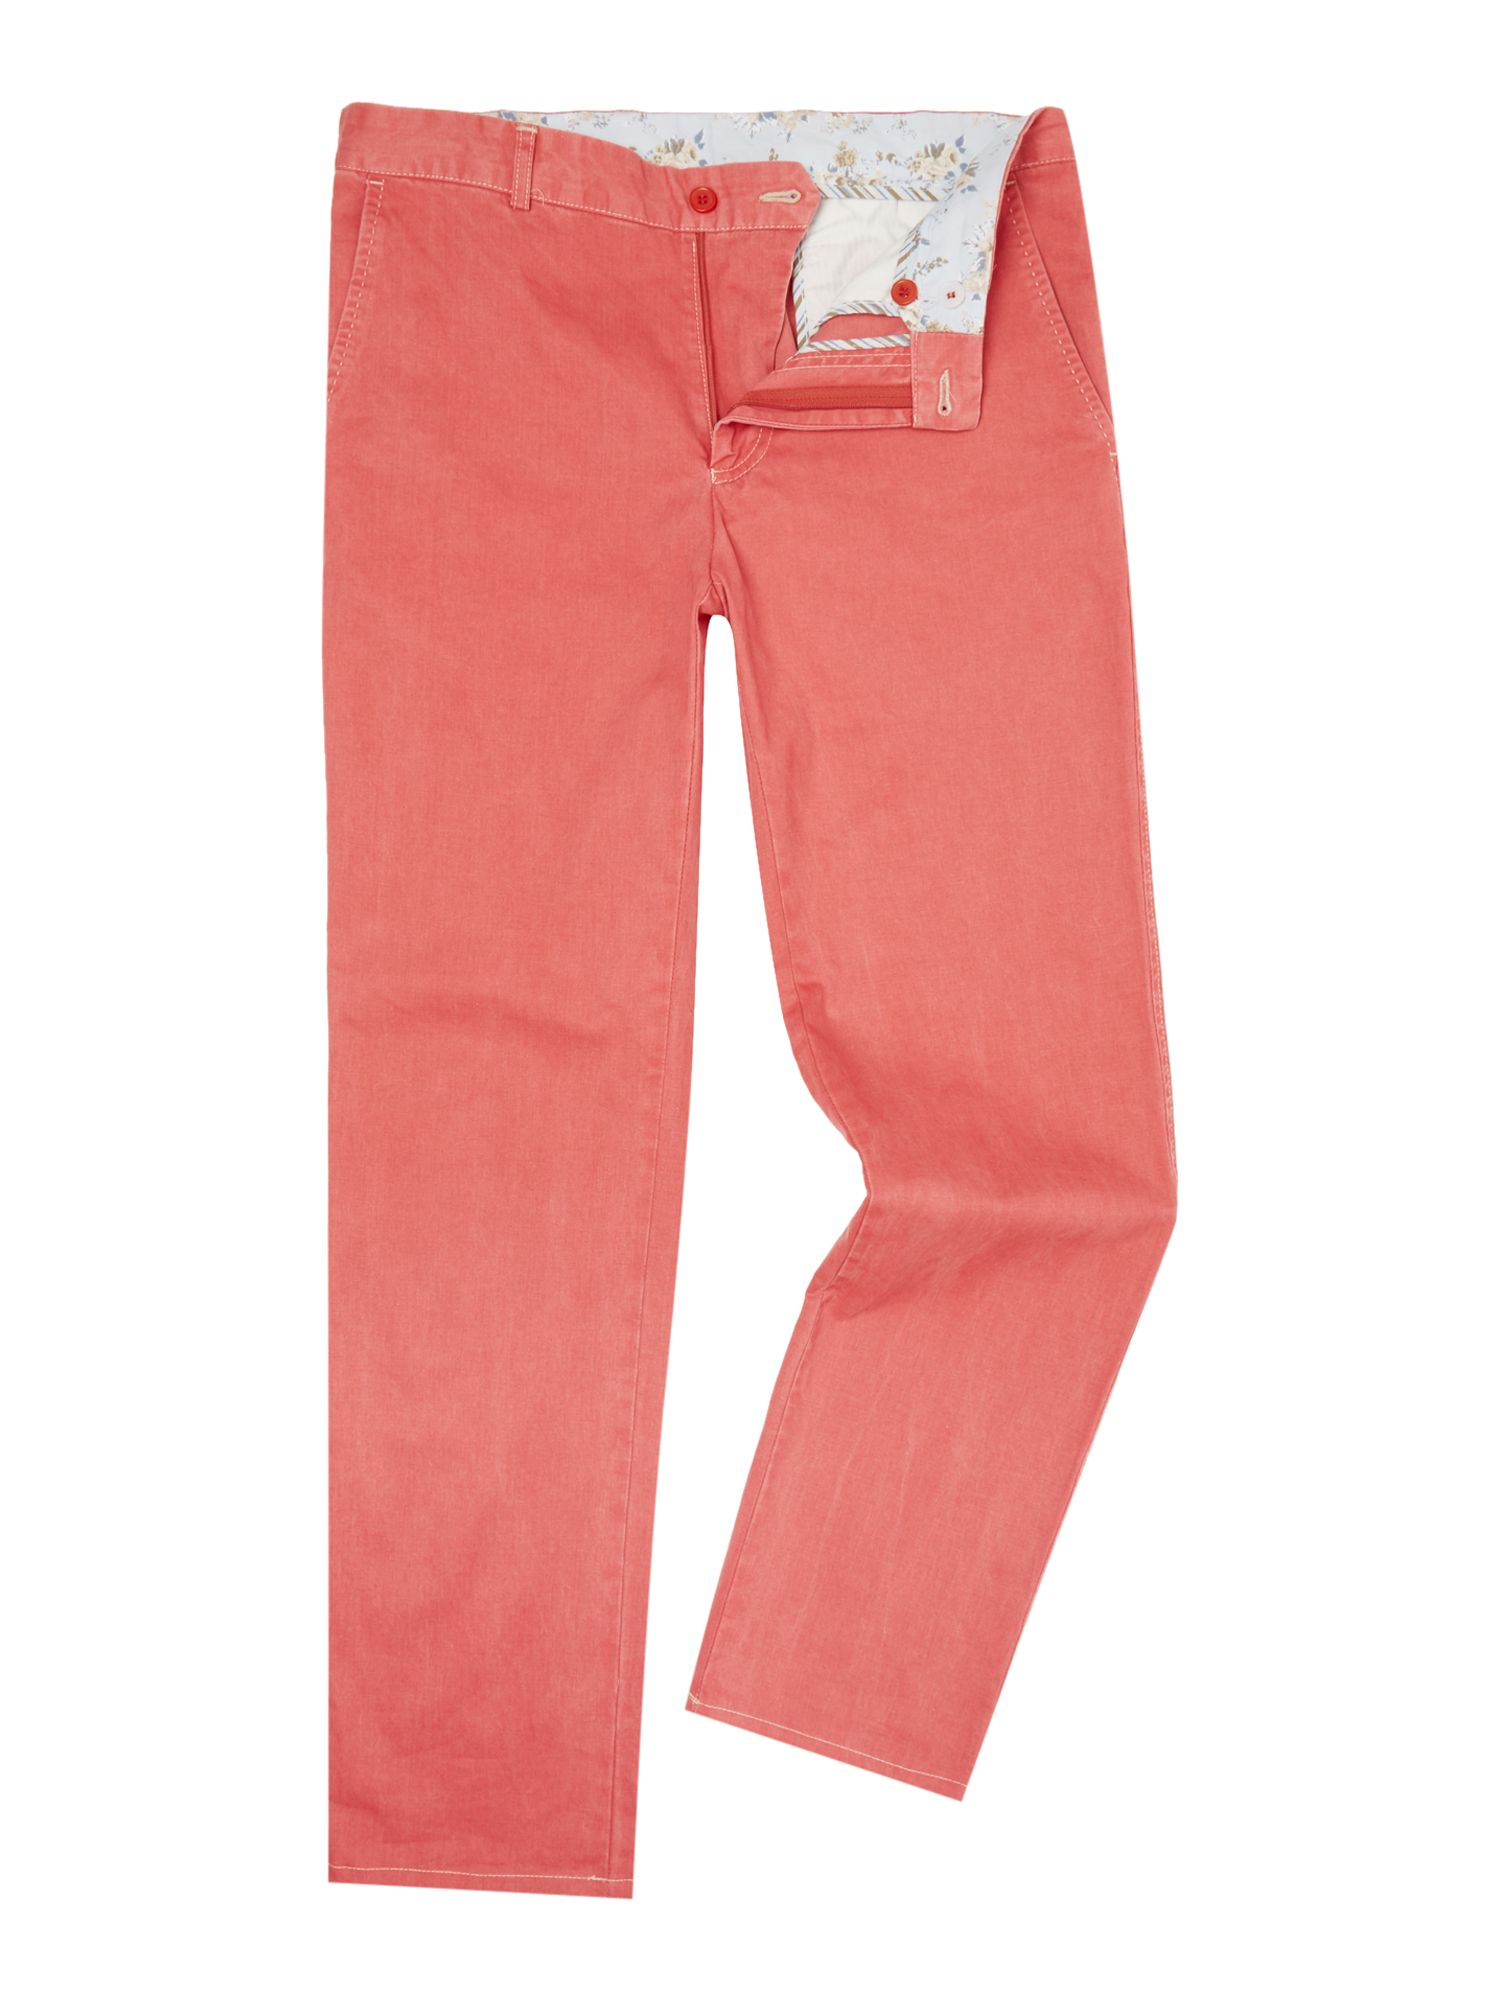 Magee Men's Magee Straight Leg Tailored Trousers, Pink